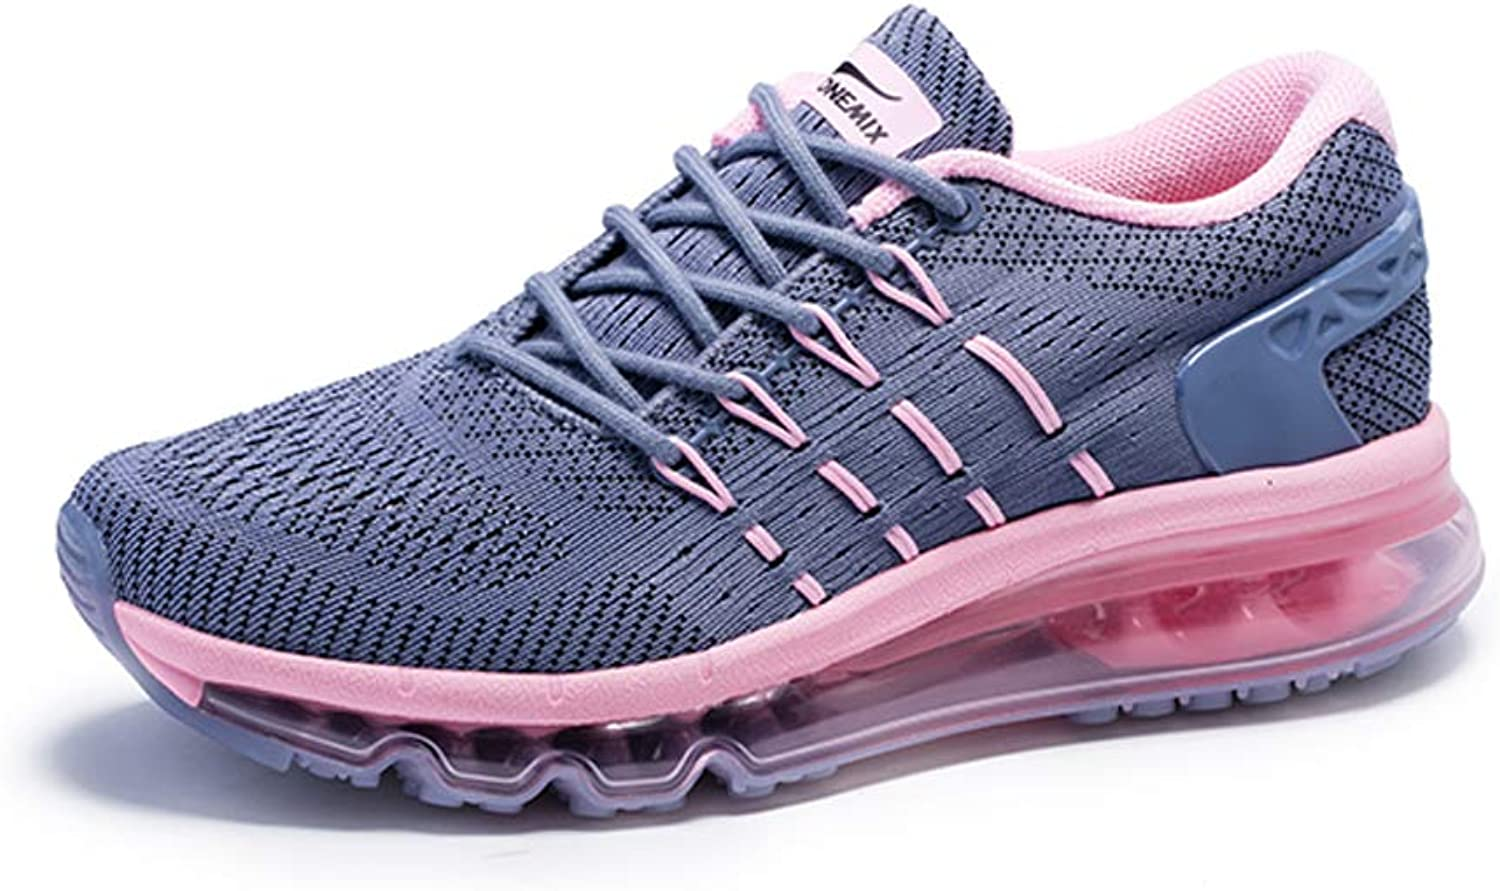 ONEMIX Unisex Air Cushion Sneaker Breathable Athletic Training Casual Tennis shoes